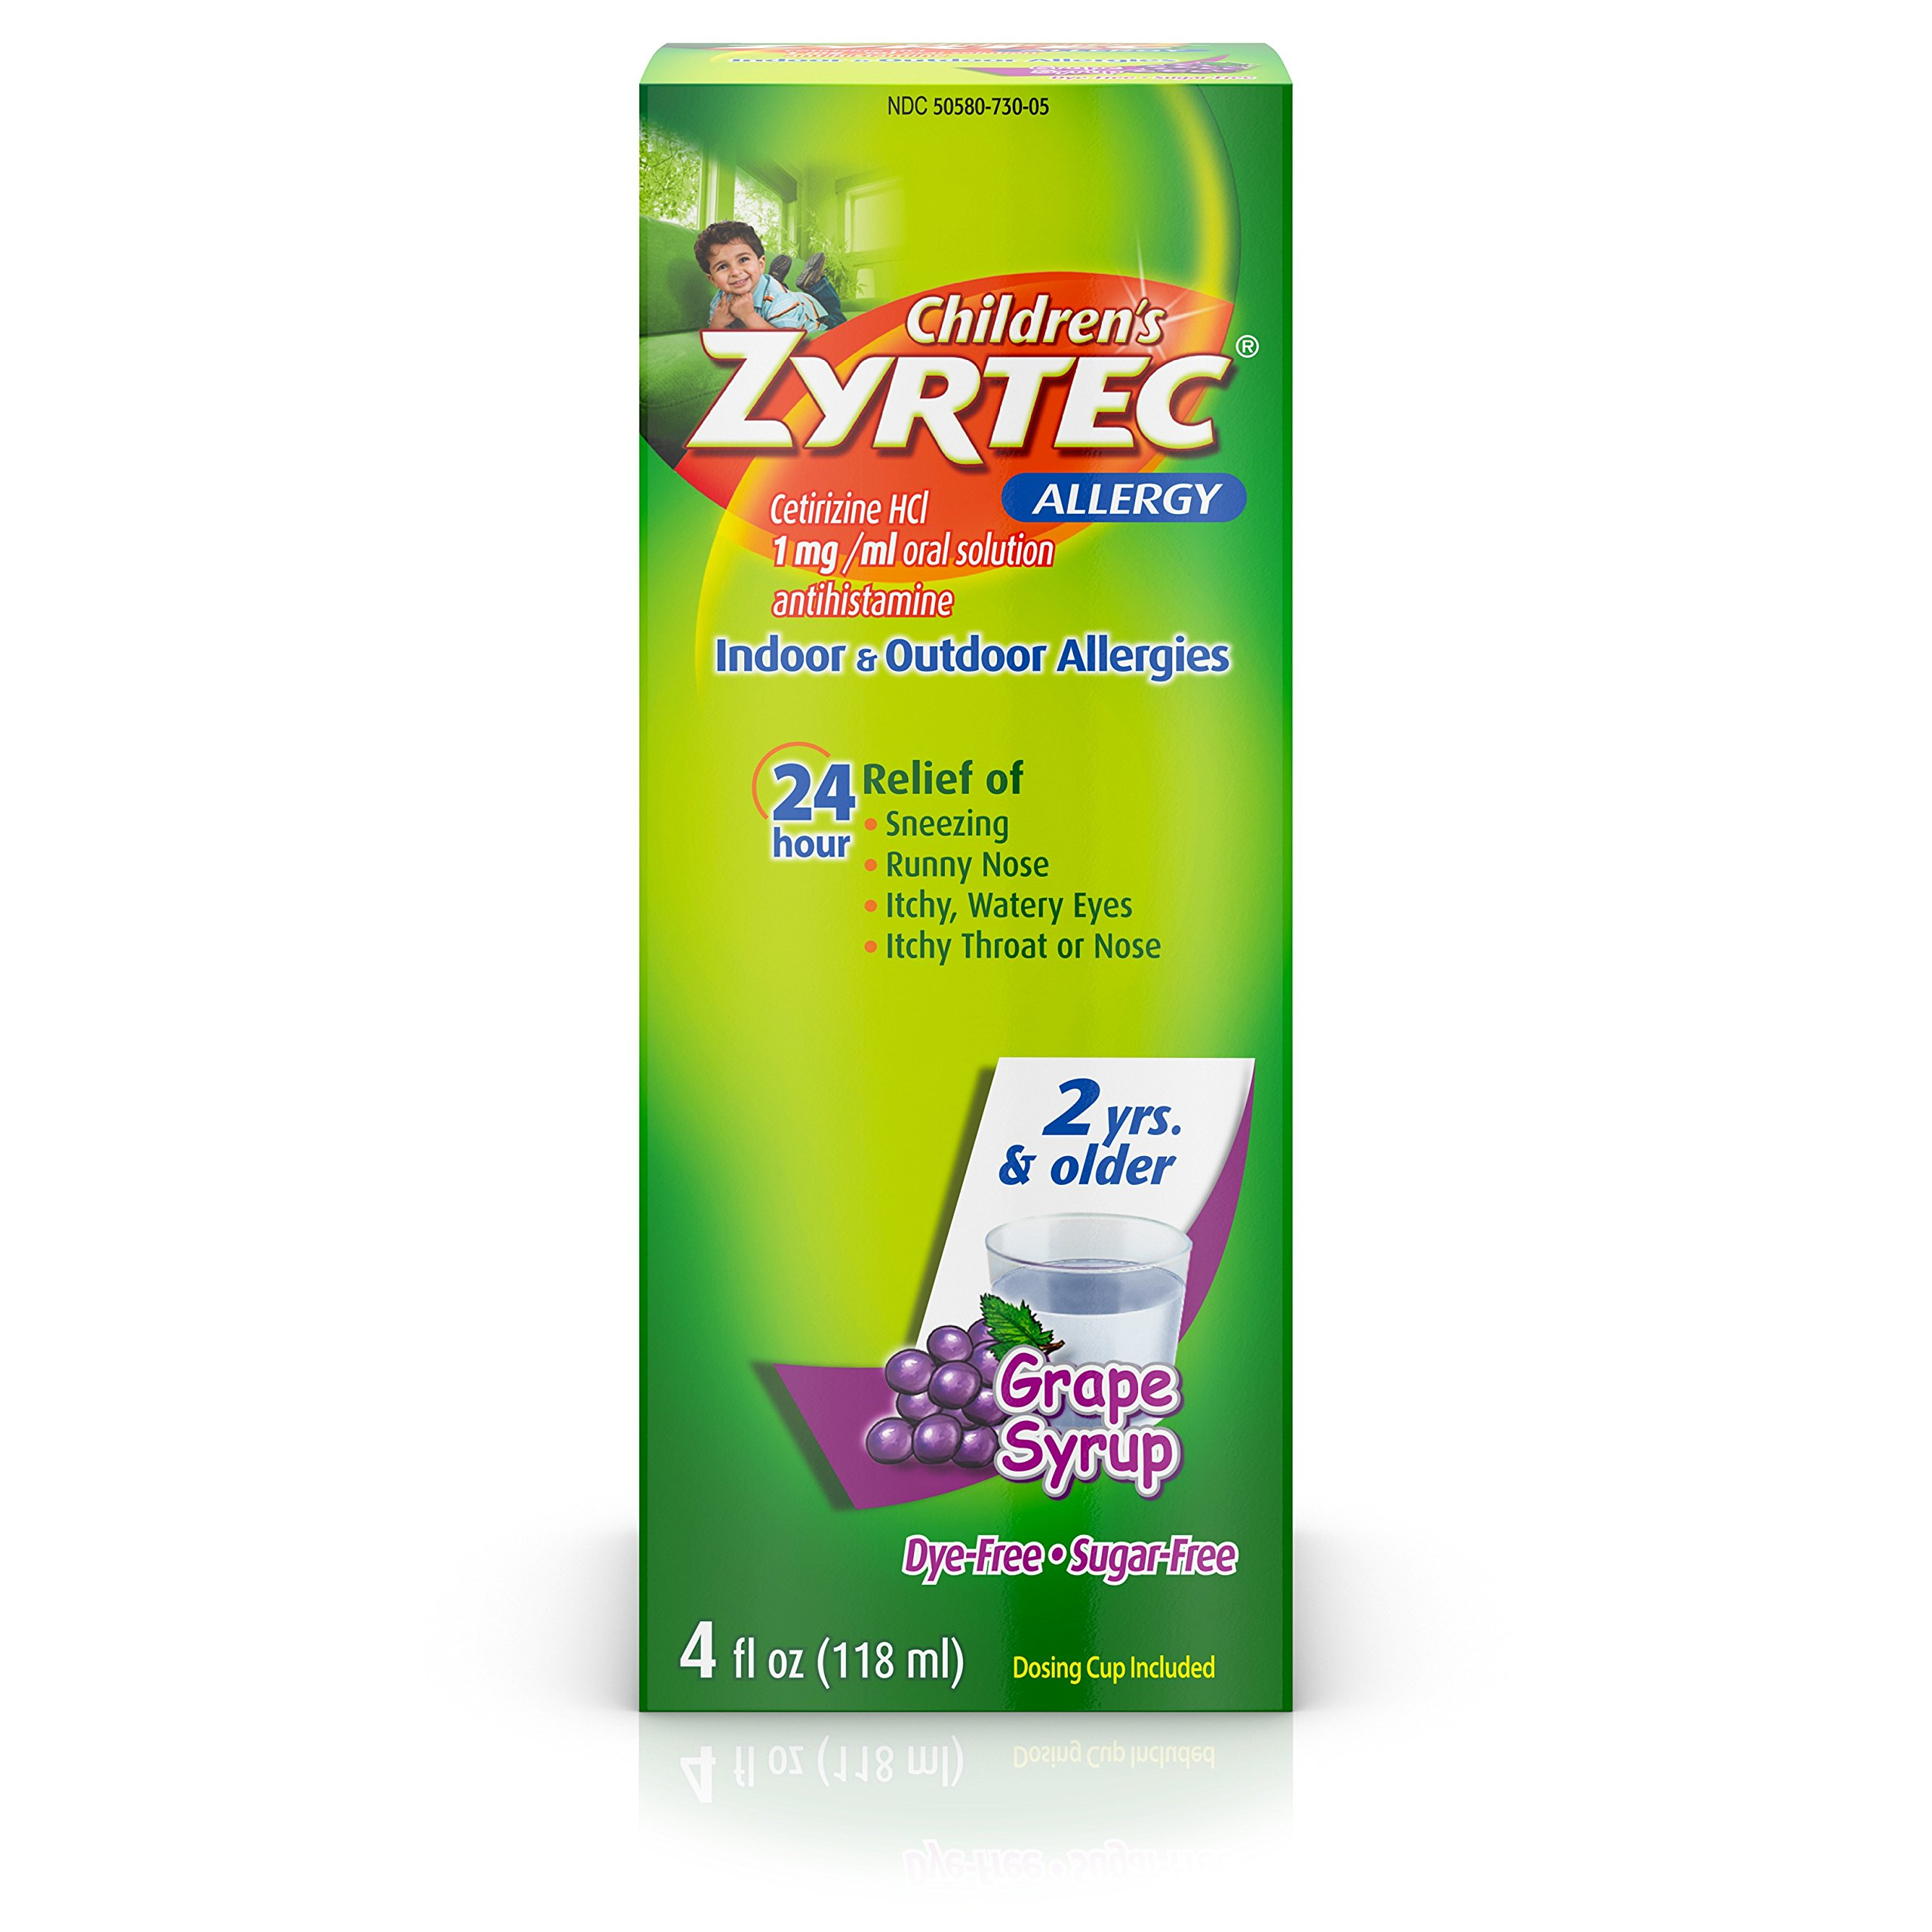 Zyrtec 24 Hr Children's Allergy Syrup with Cetirizine, Dye- & Sugar-Free, Grape Flavor, 4 fl. oz, pack of 36